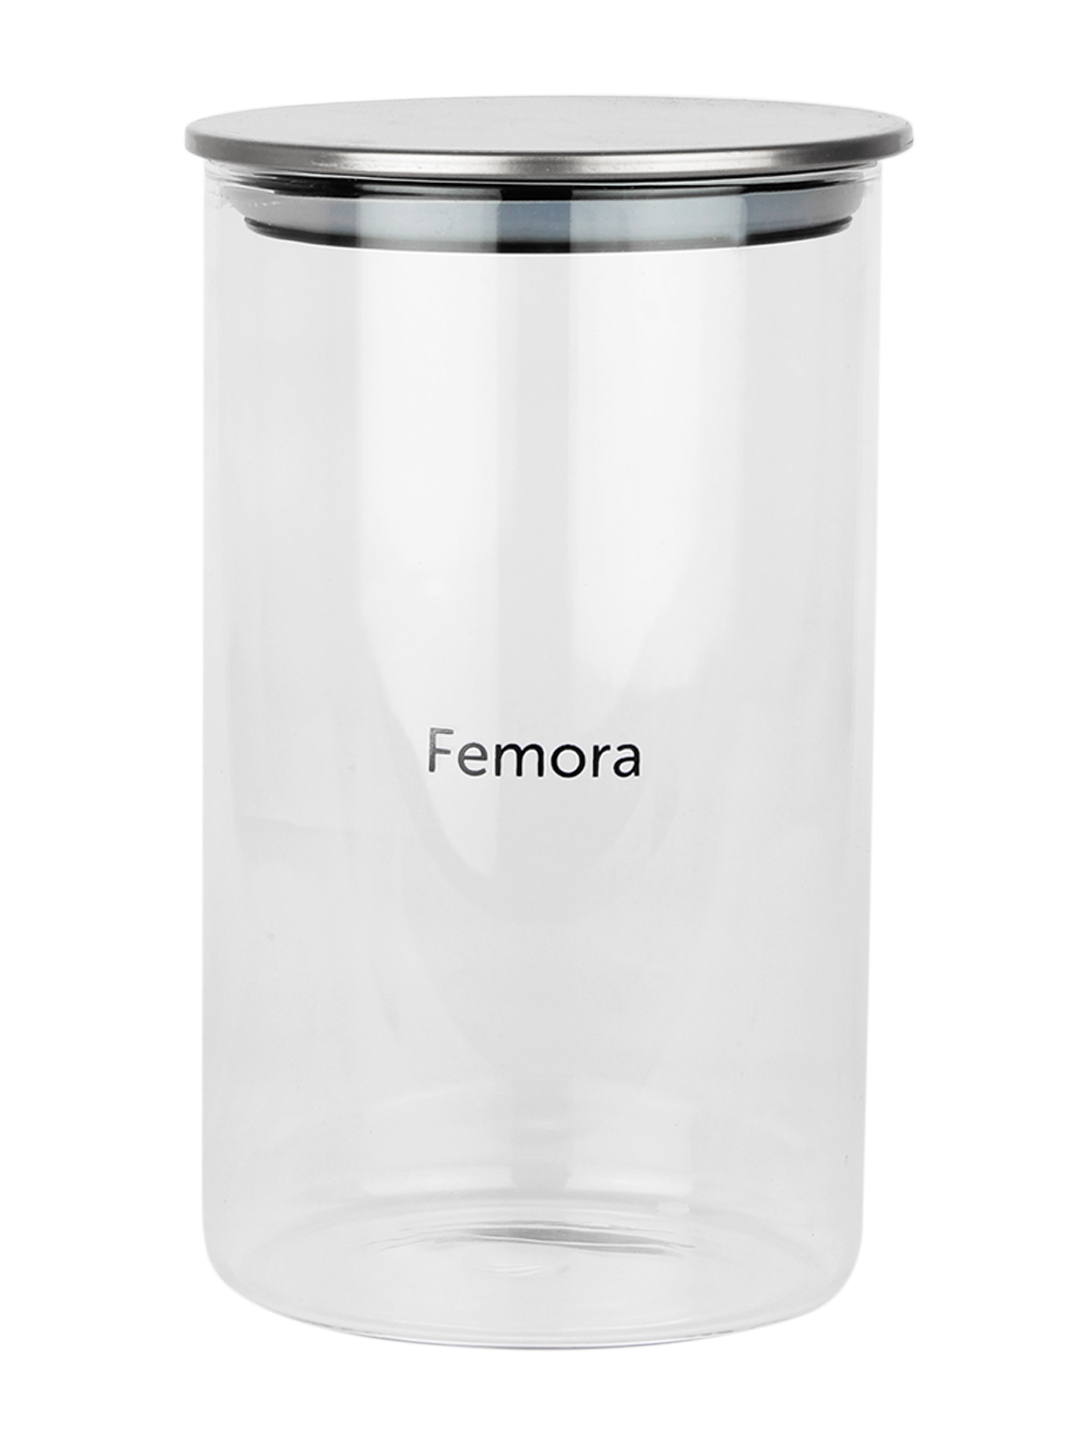 Femora Borosilicate Glass Air Tight Trend Jars with Silver Metalic Lid for Kitchen, 1300ml Set of 4